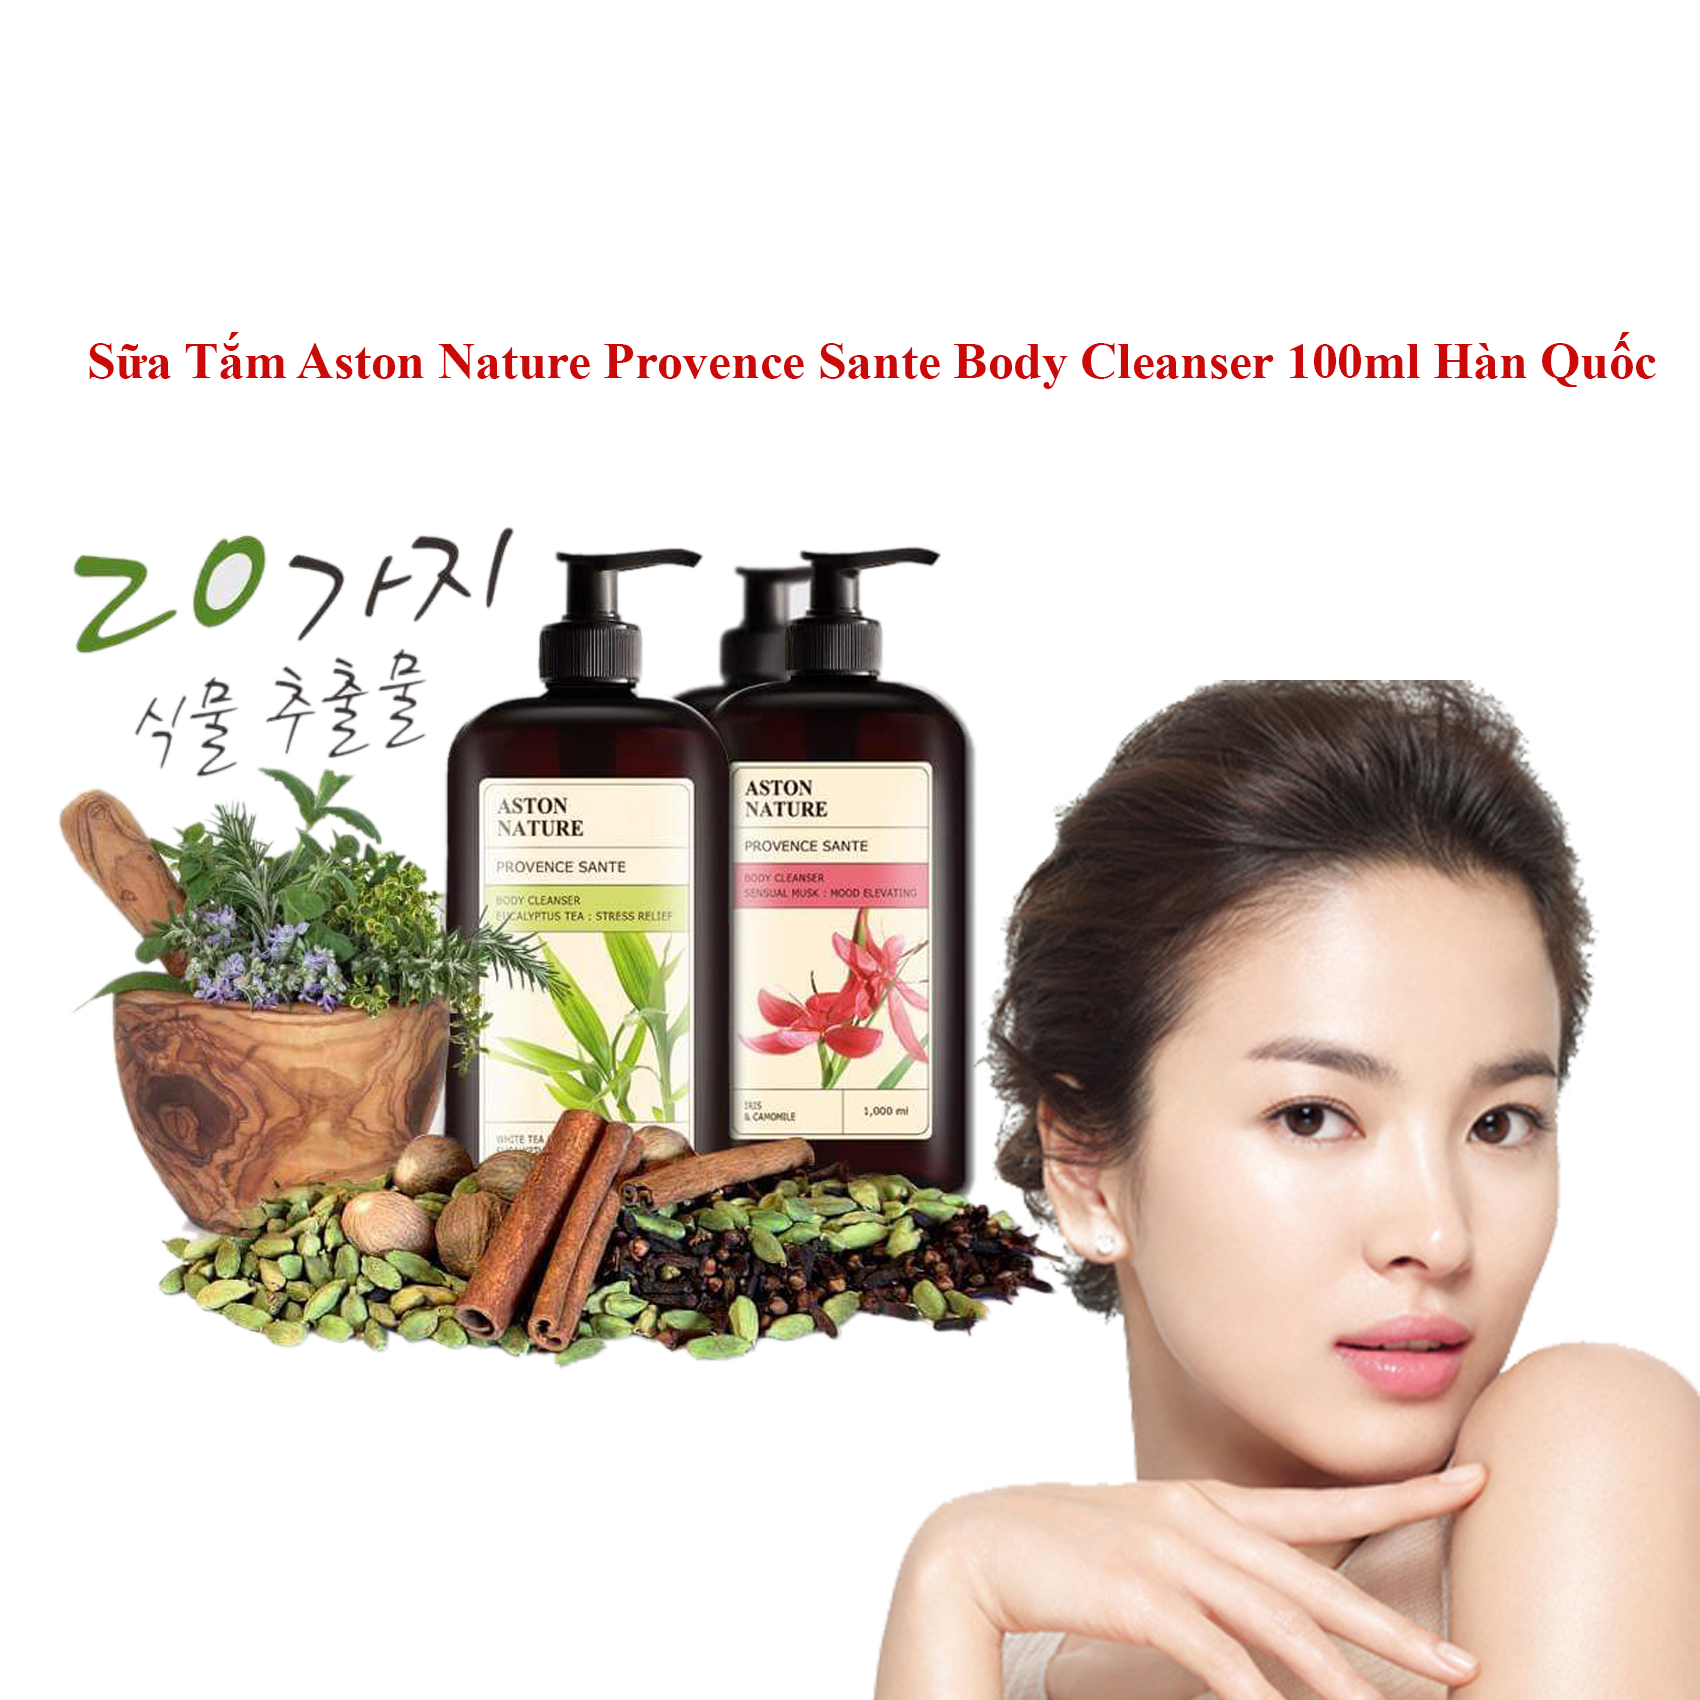 sua-tam-sua-tam-aston-nature-provence-sante-body-cleanser-100ml-han-quoc-2147